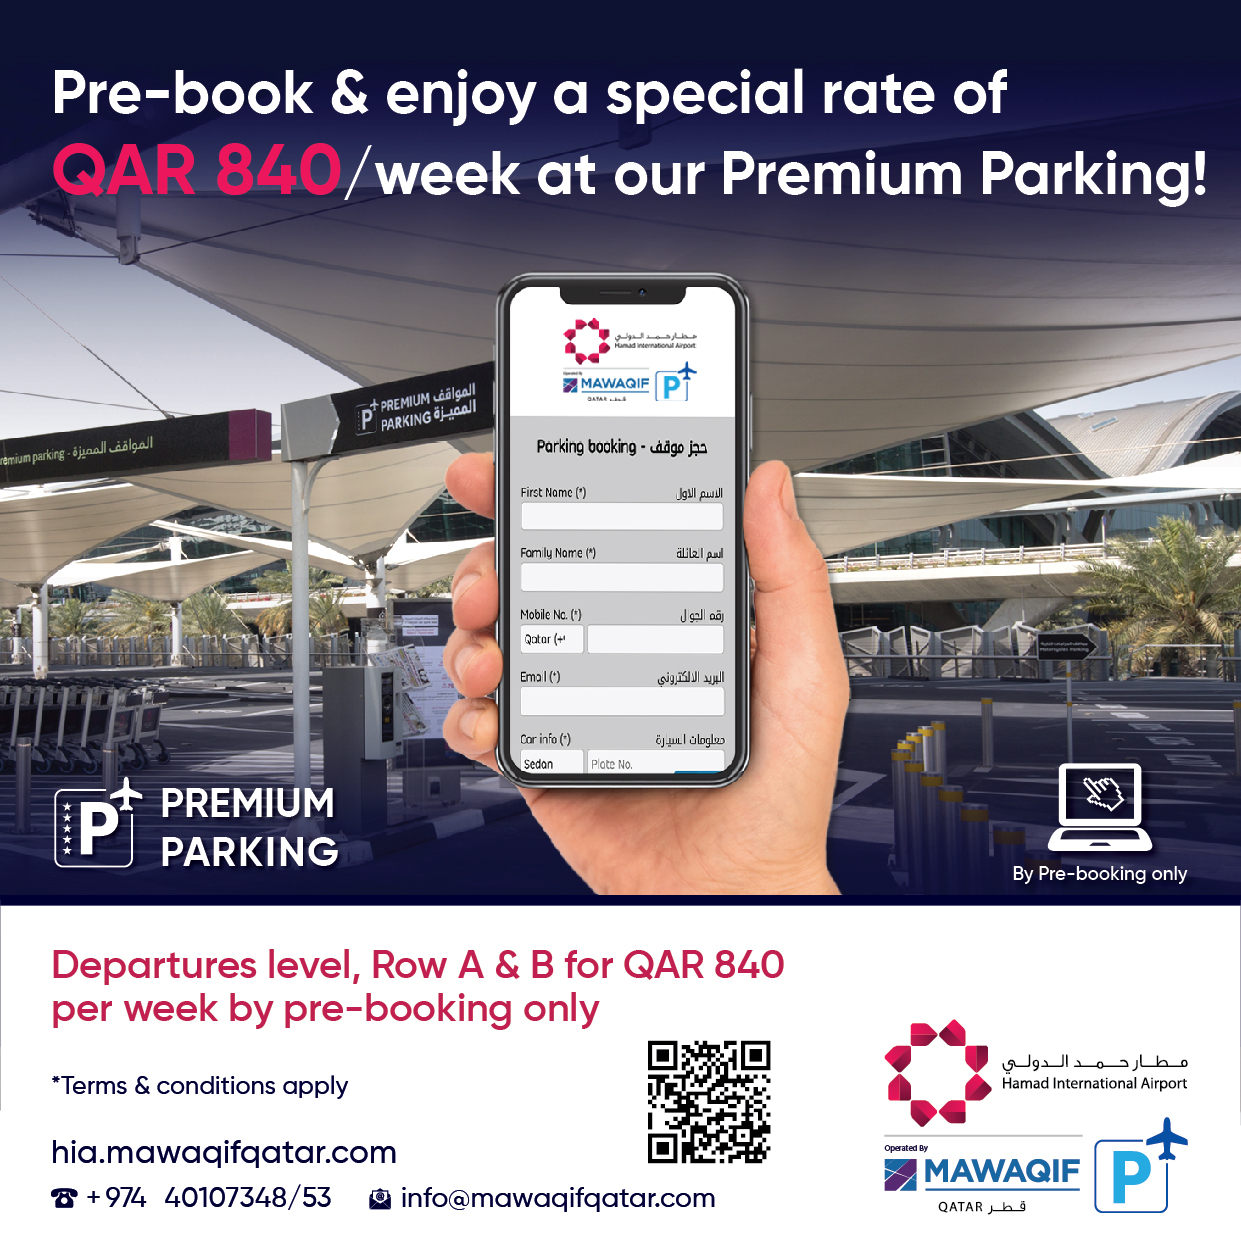 Pre-book & enjoy a special rate of QAR 840/week at our Premium Parking